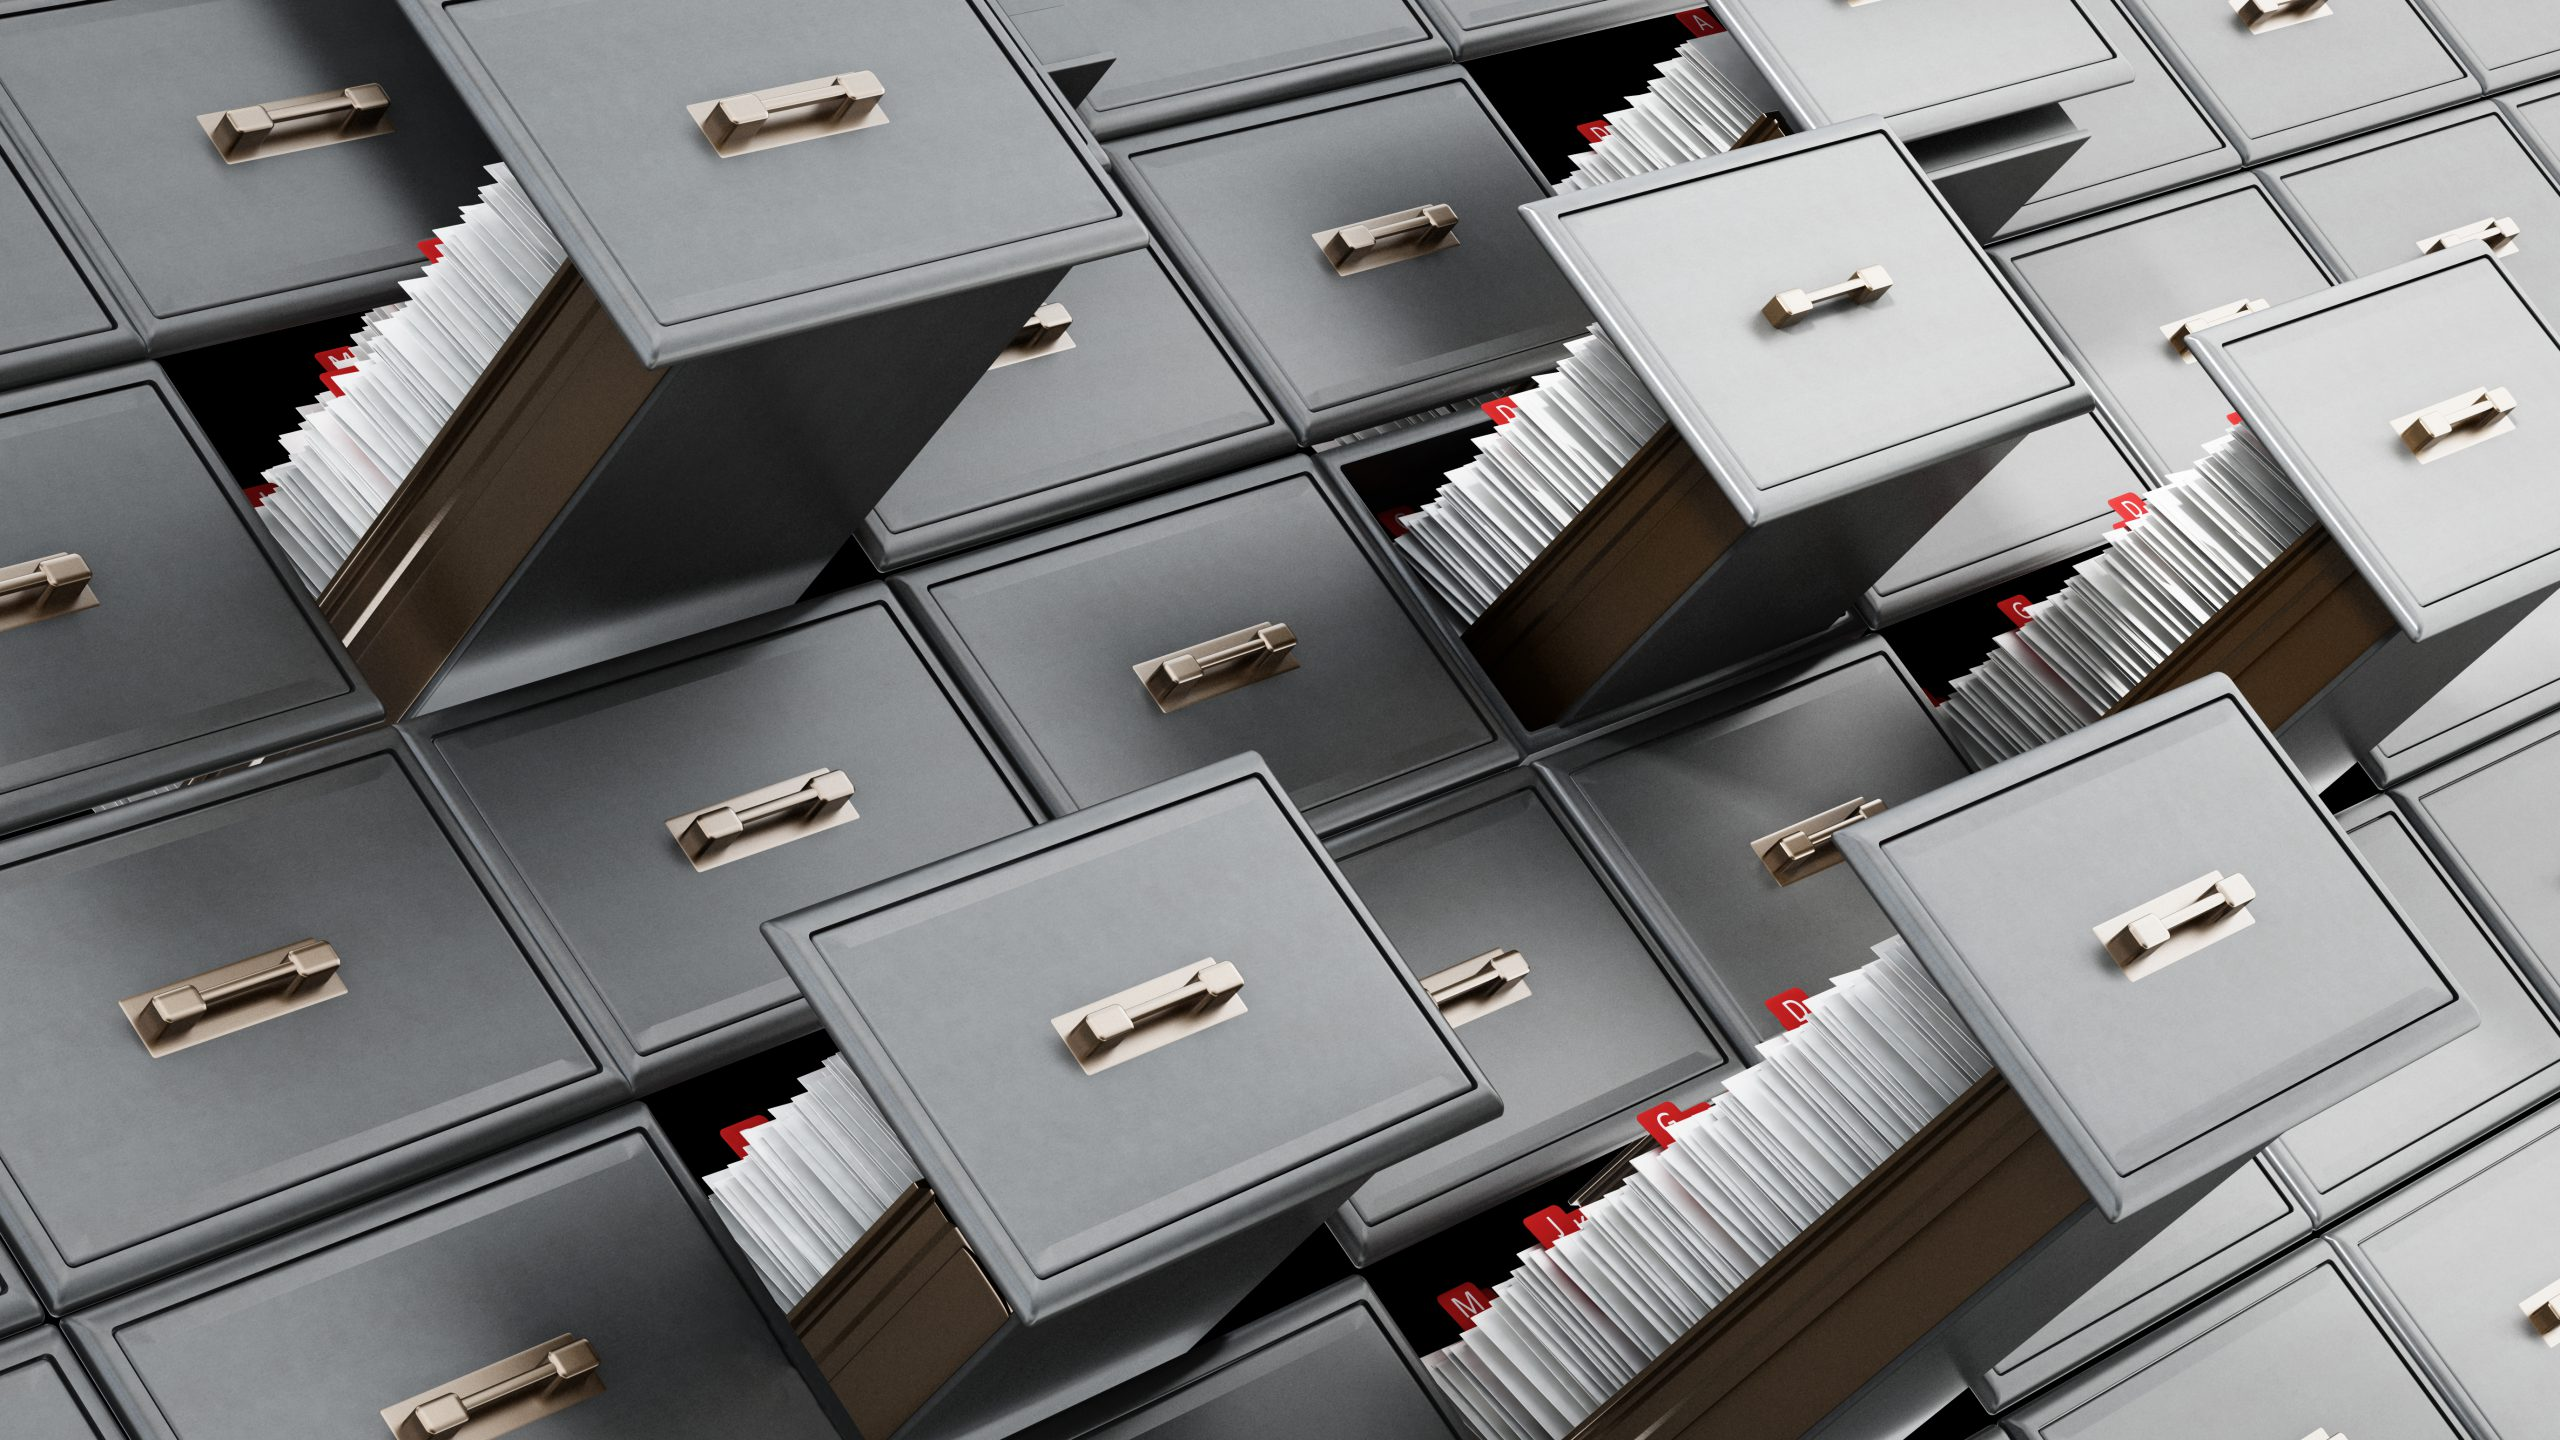 endless file cabinets with drawers open